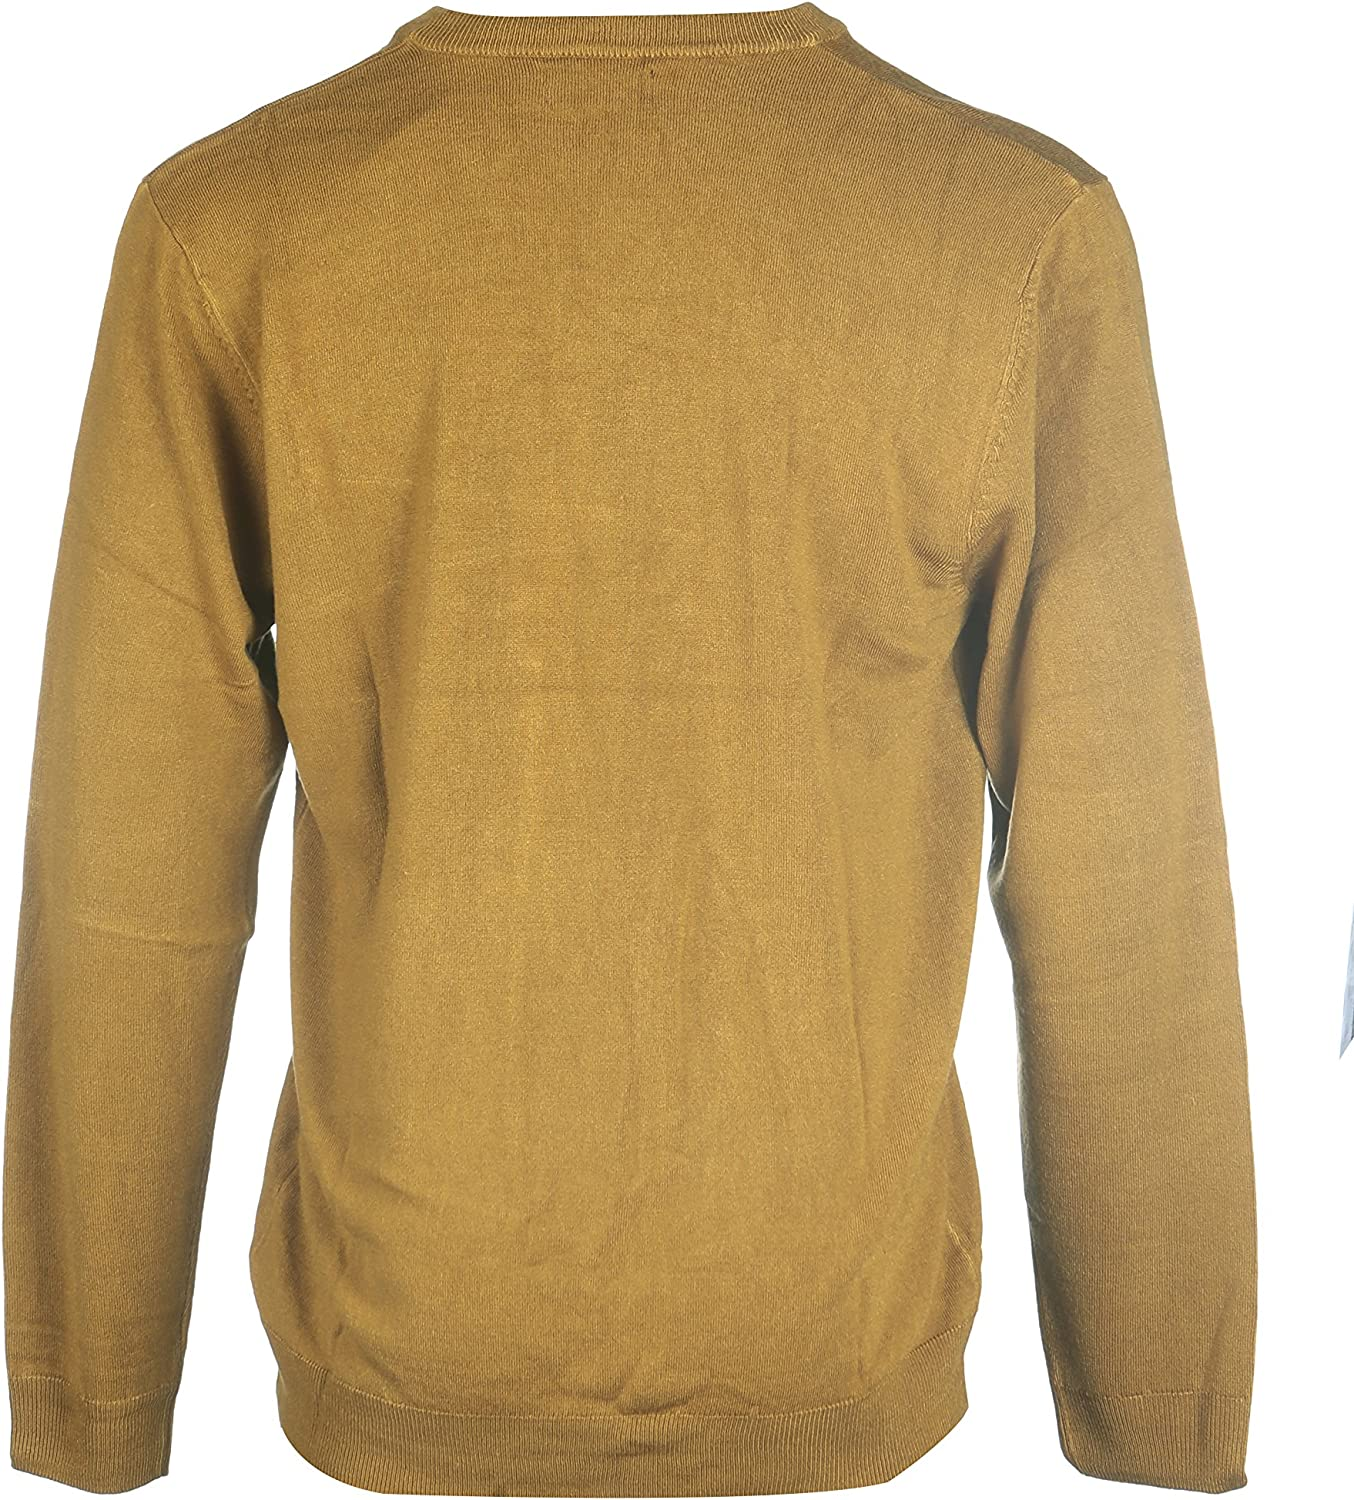 Blu Cherry Mens V Neck Pull Over Jumper Sweater Long Sleeve All Year Round Cashmere Like